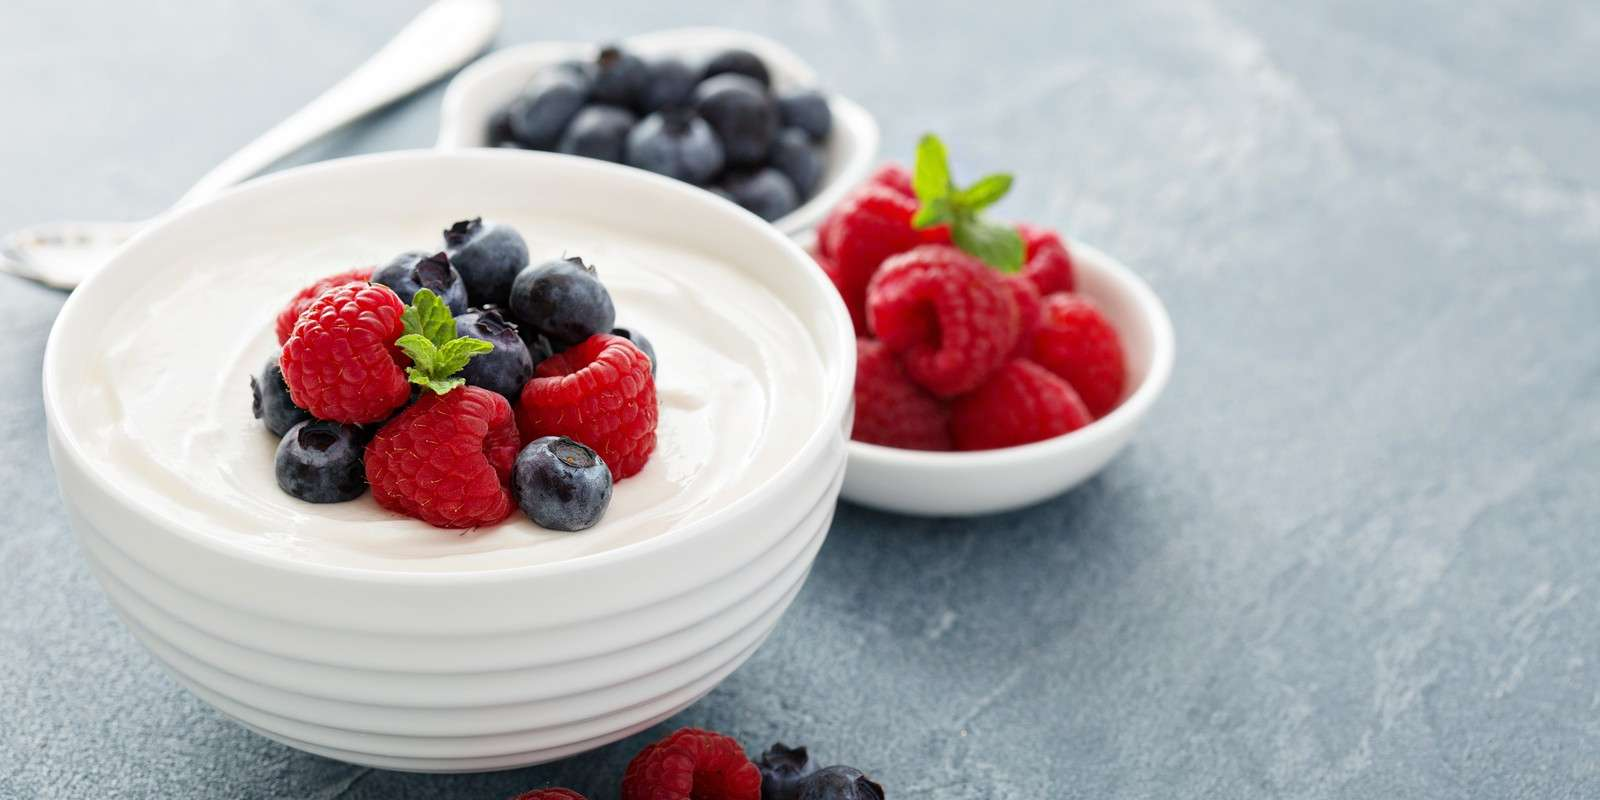 Coconut Yogurt with Berries